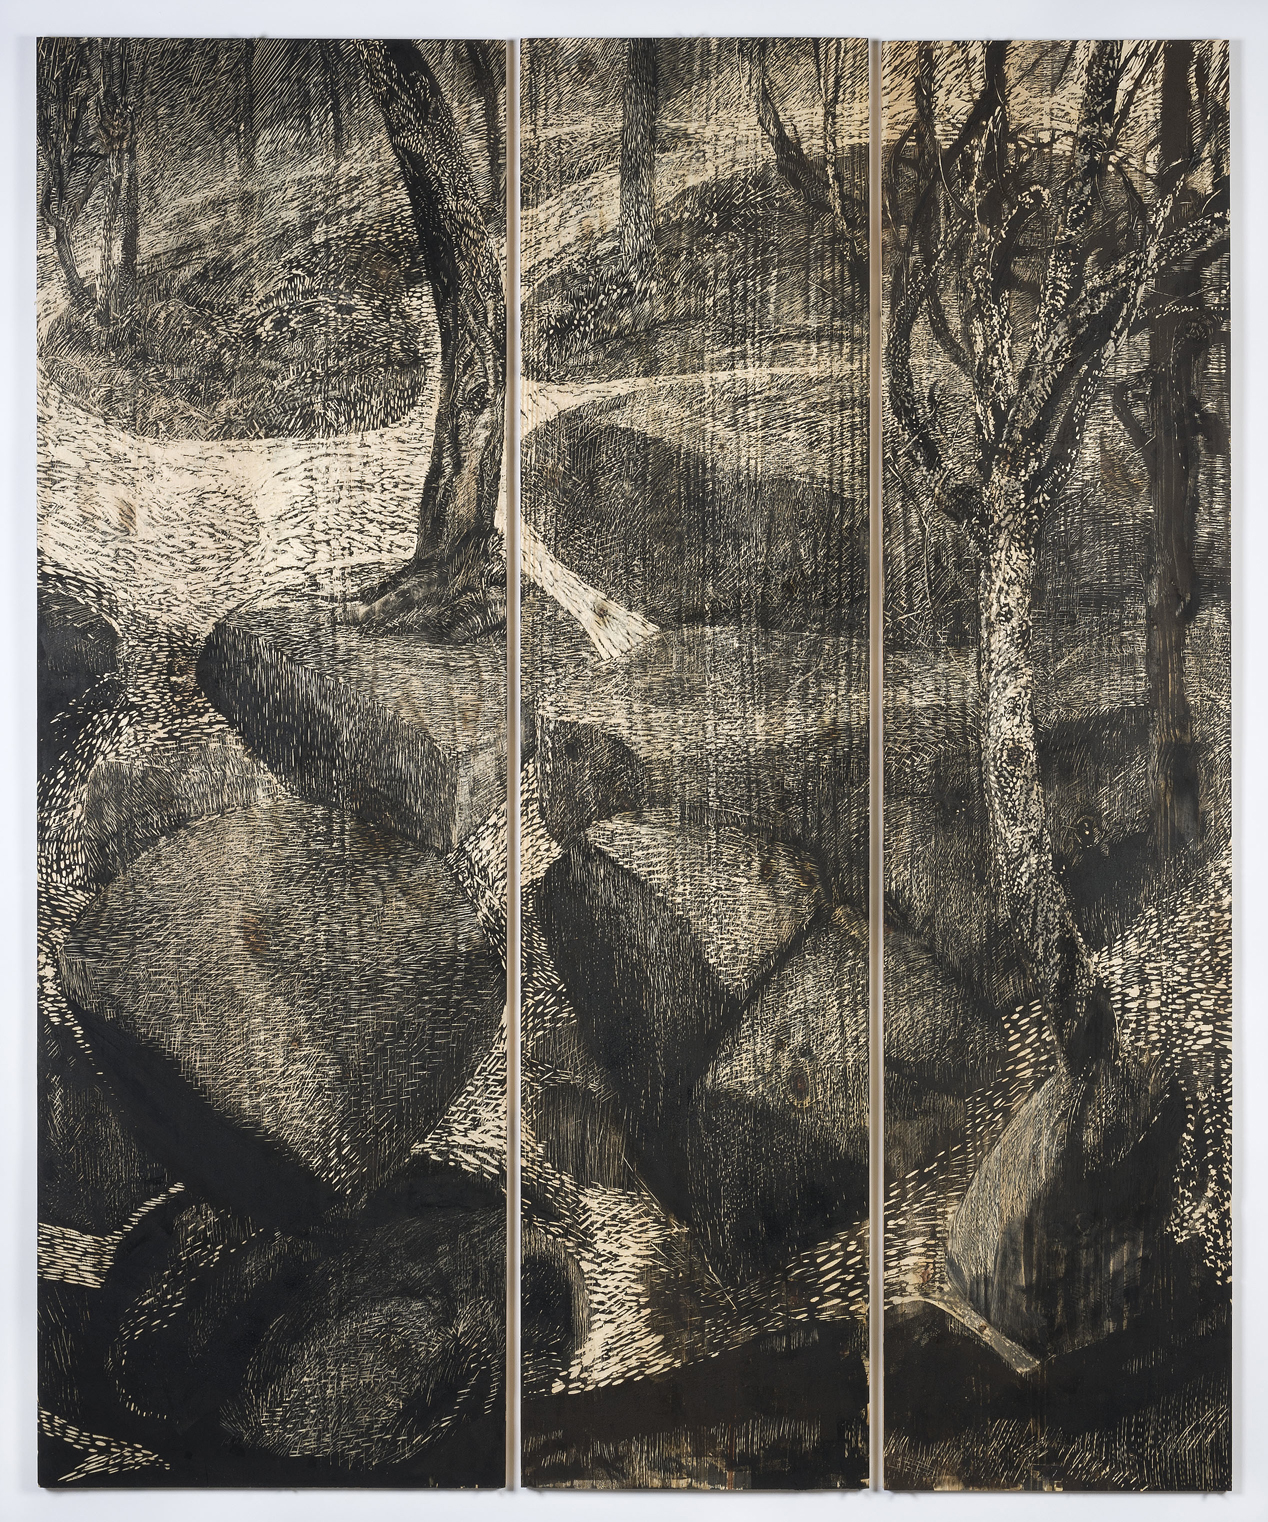 Midnight Glory , 2012, inked and carved wood panels, 74 x 60 inches